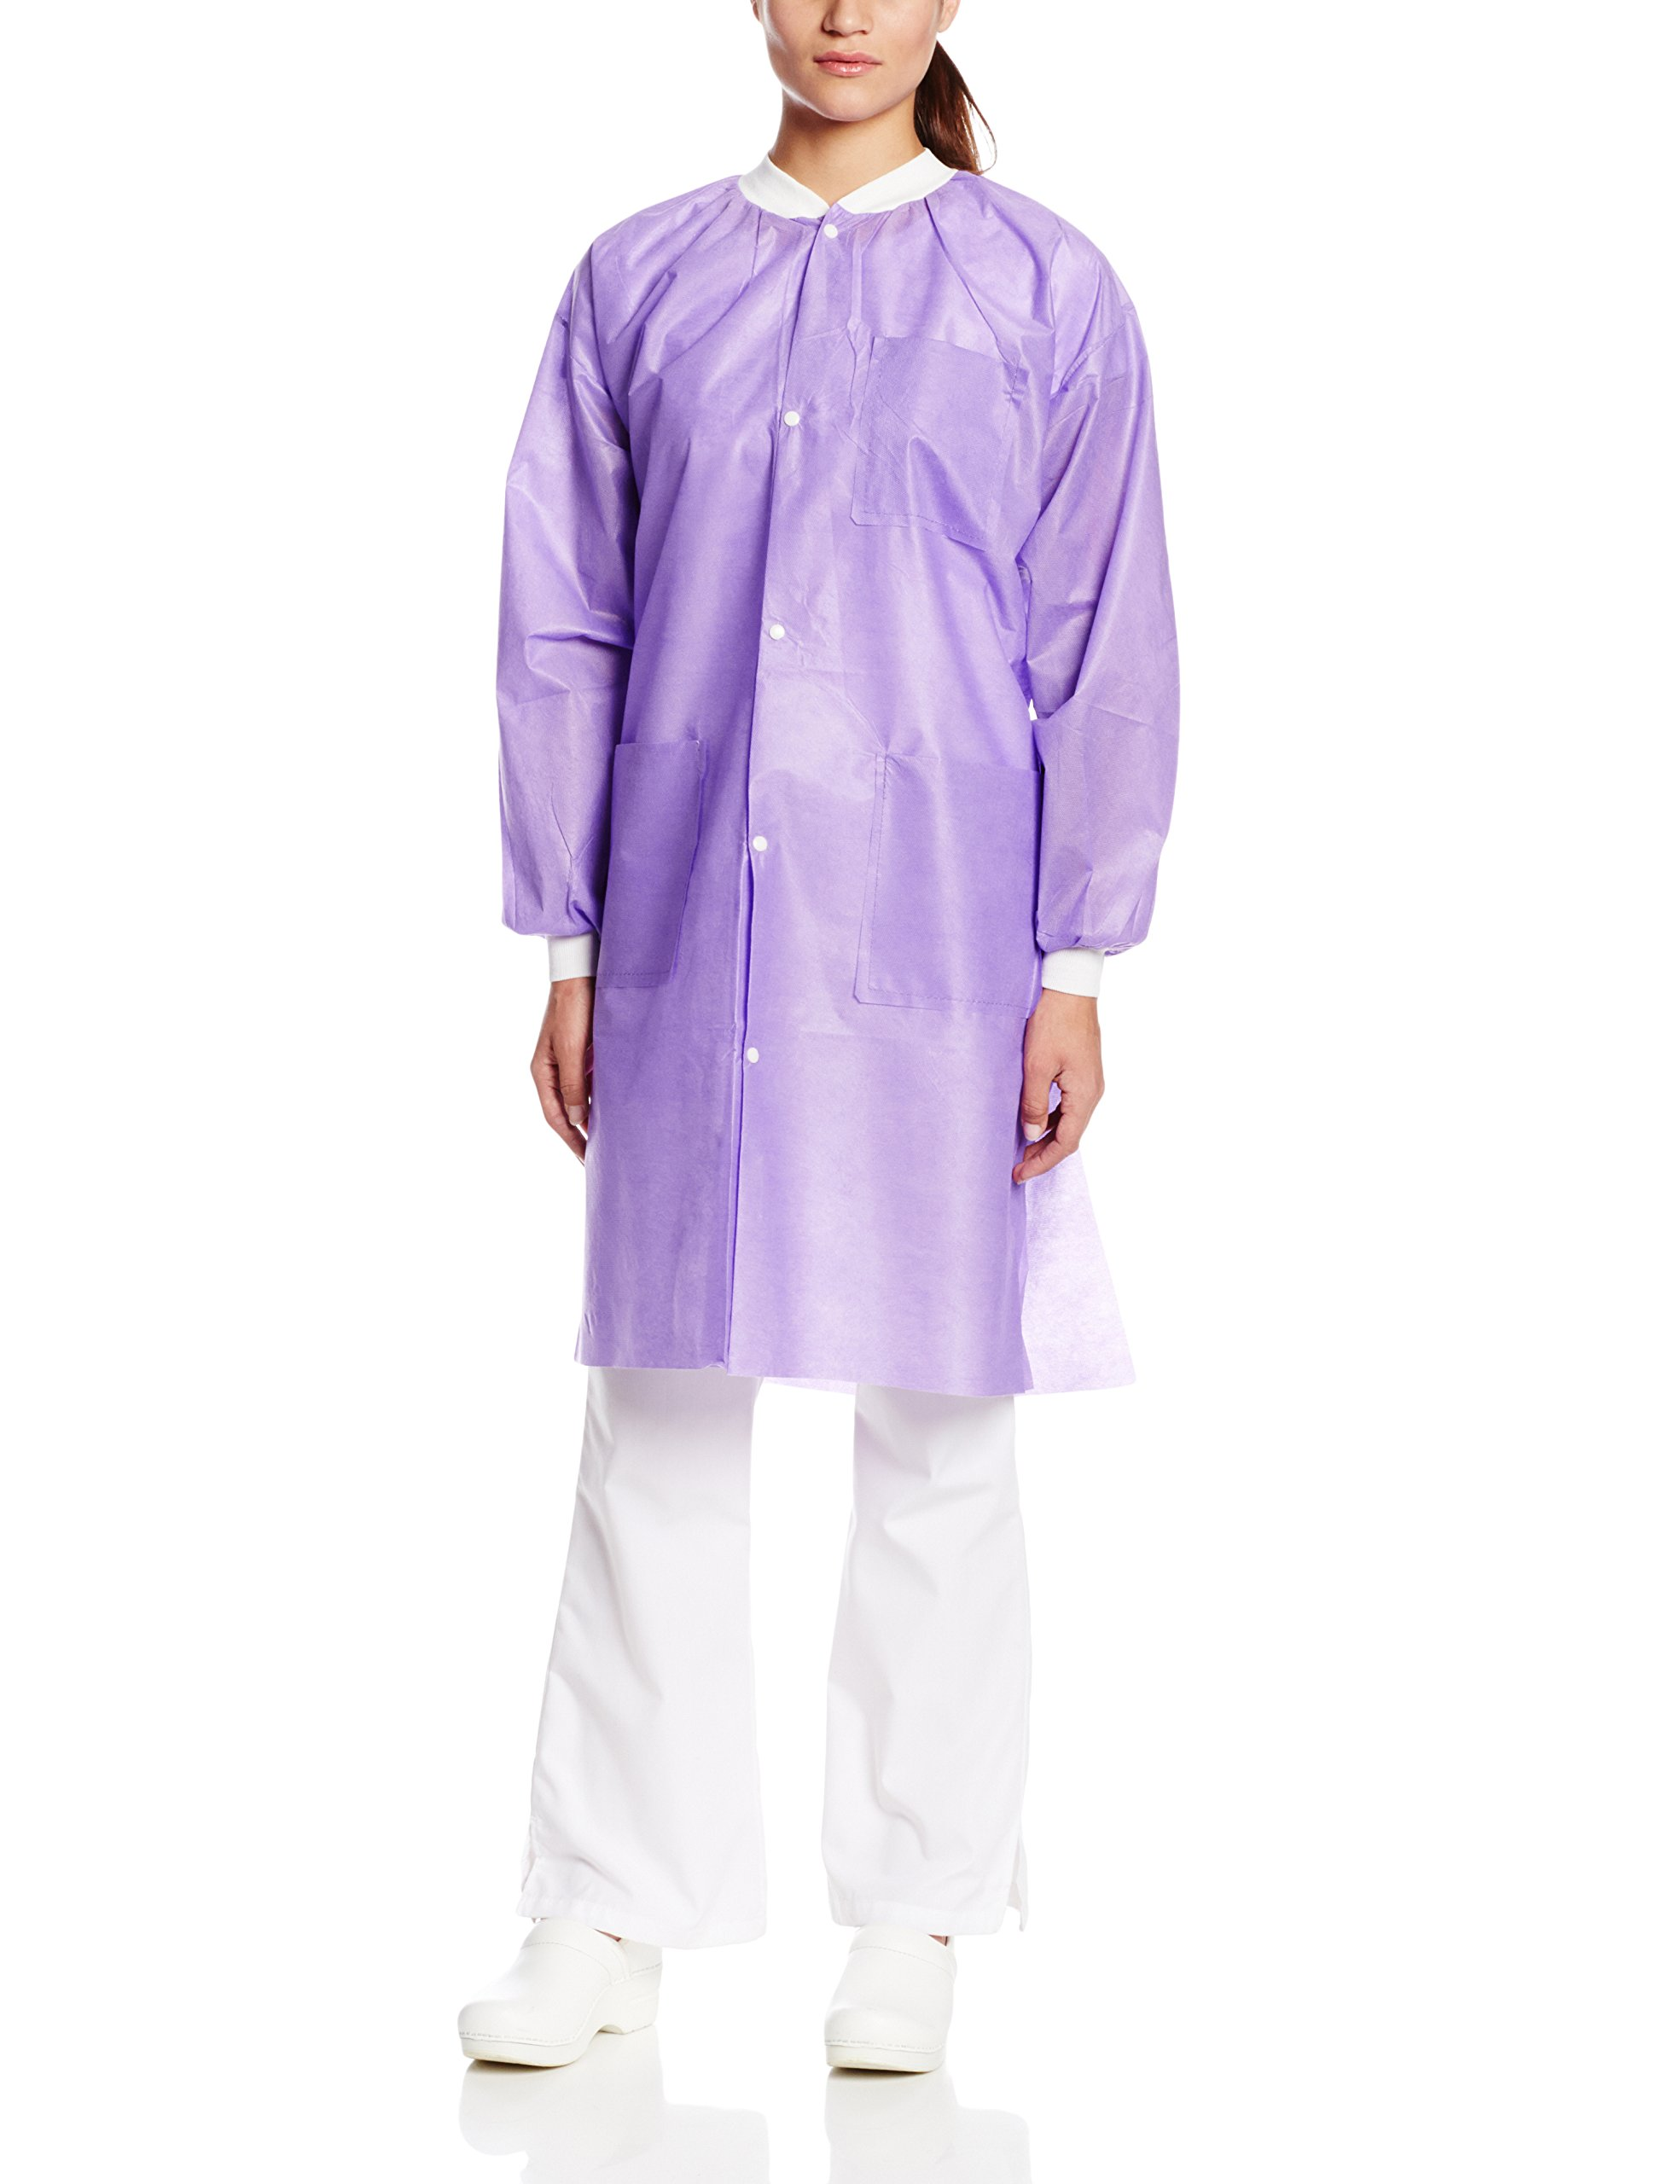 ValuMax 3560PPXL Easy Breathe Cool and Strong, No-Wrinkle, Professional Disposable SMS Knee Length Lab Coat, Purple, XL, Pack of 10